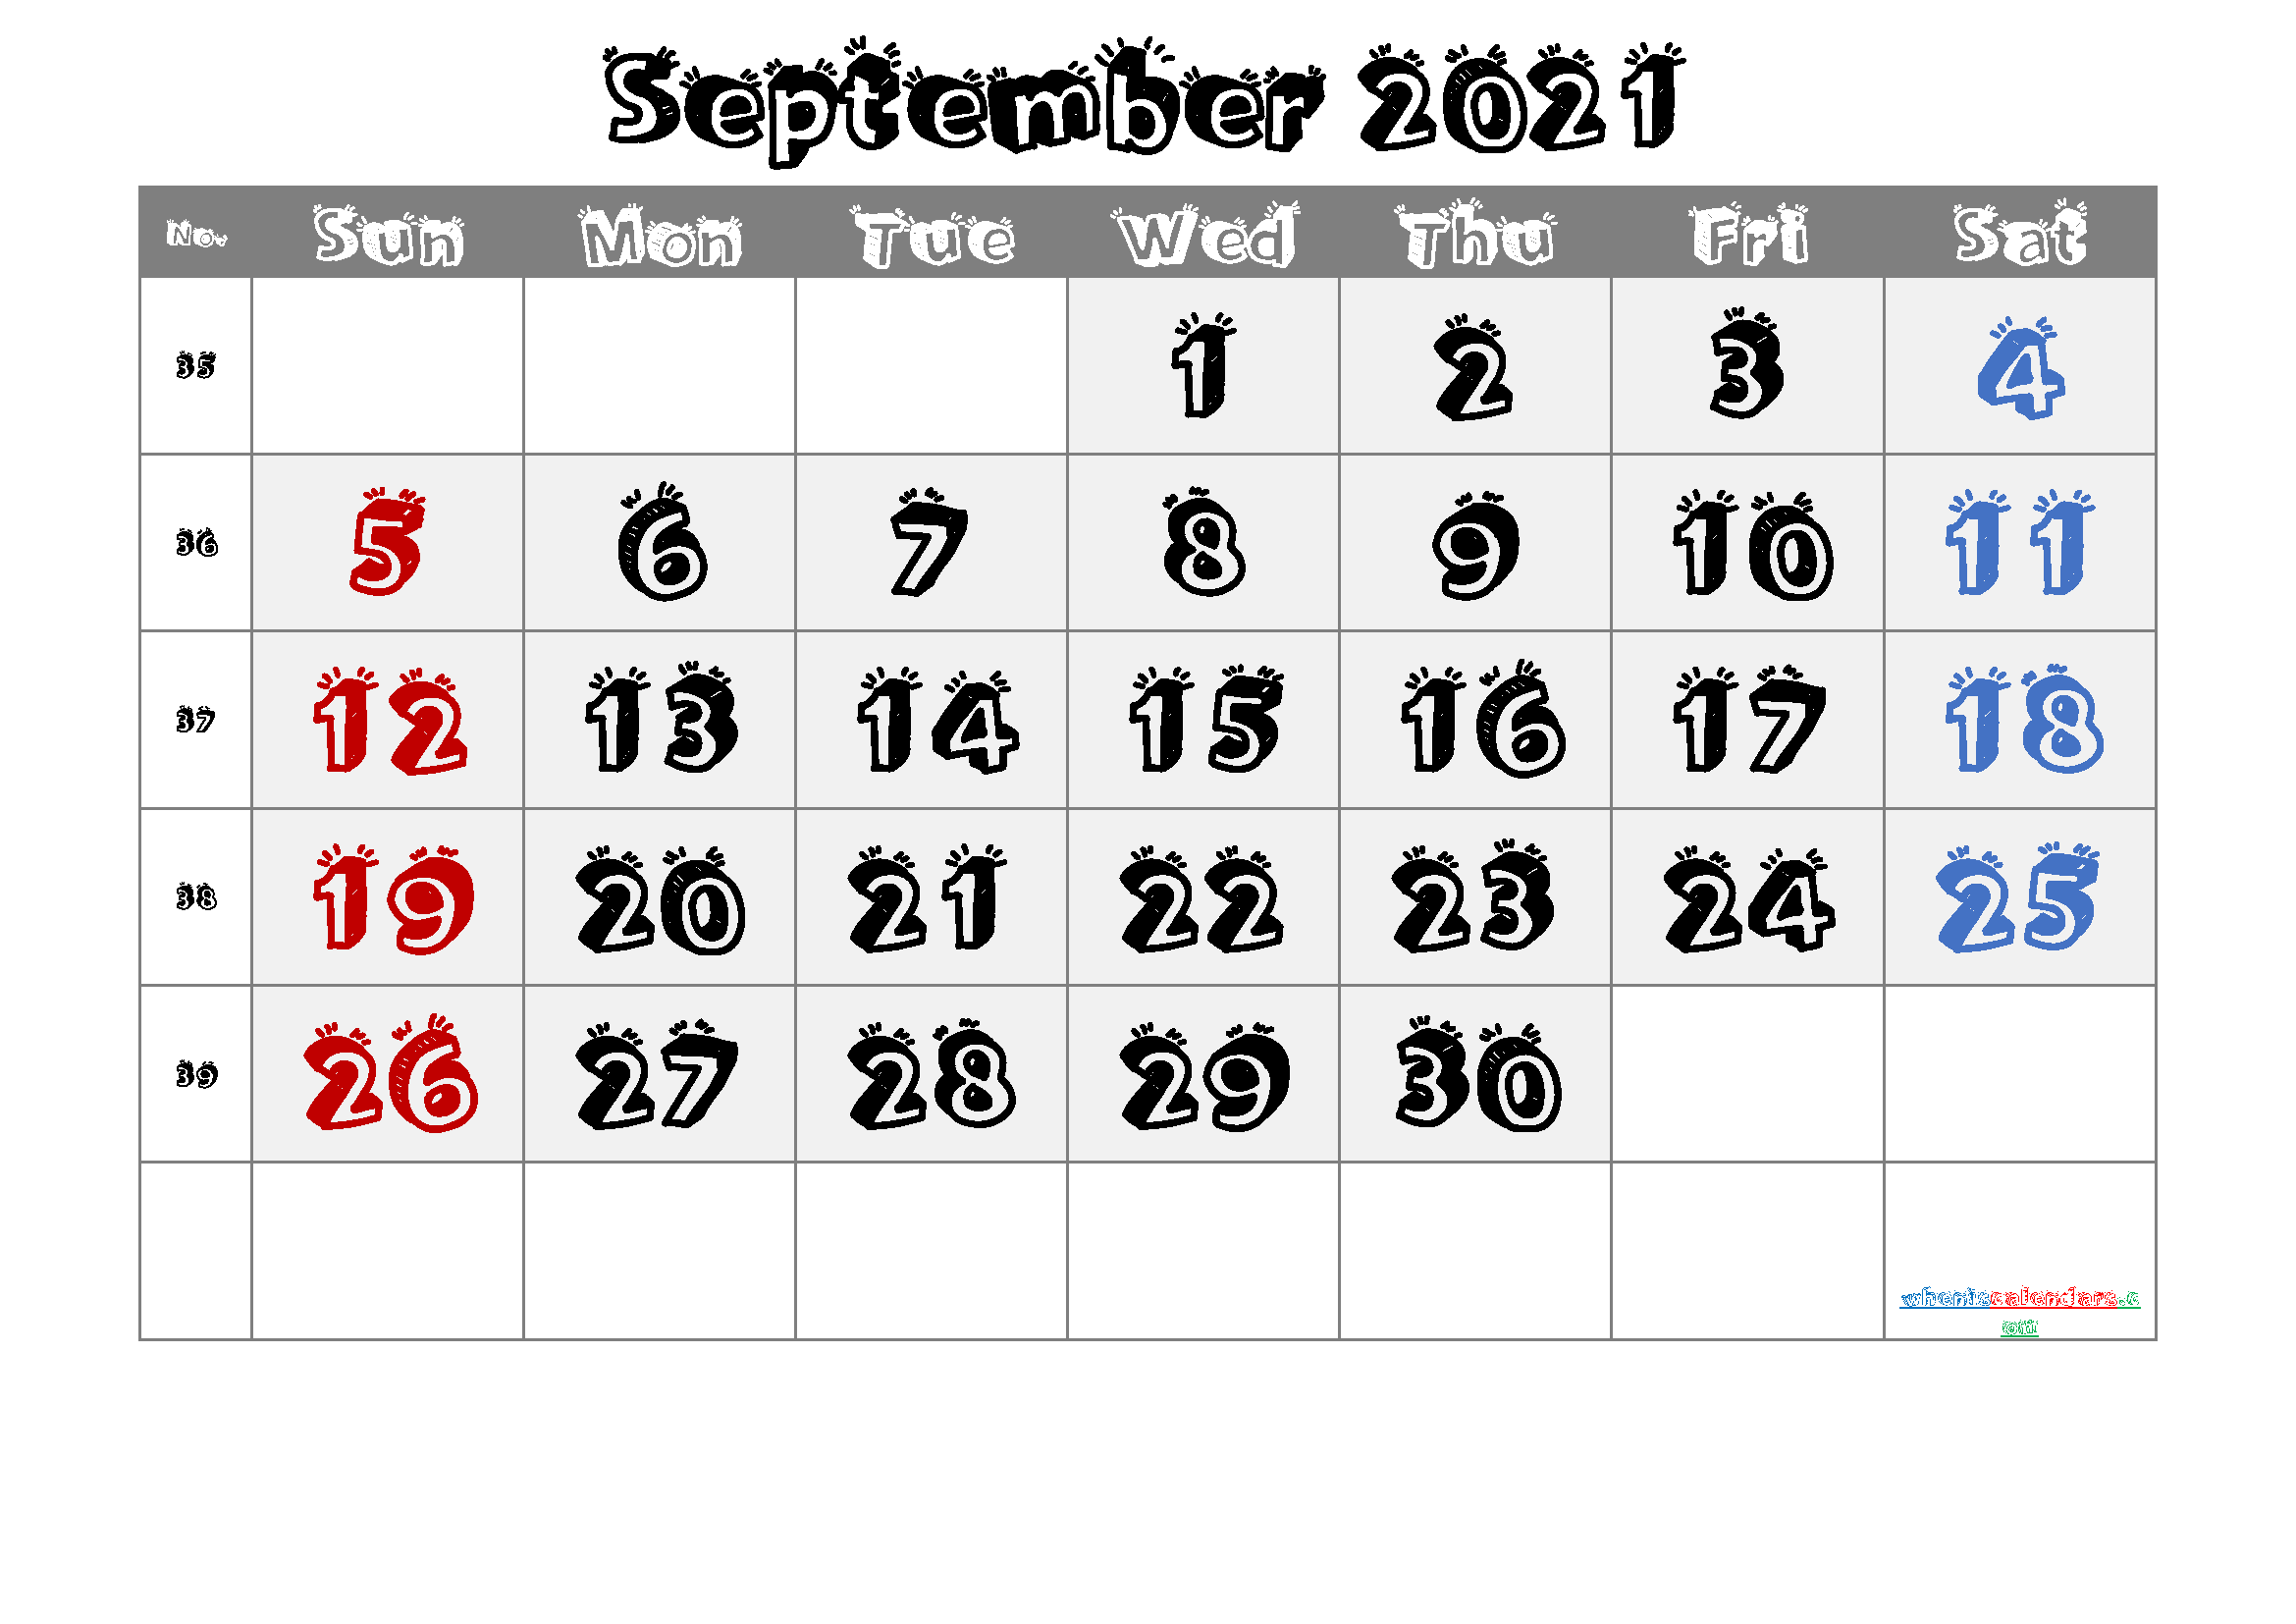 September 2021 Printable Calendar with Week Numbers